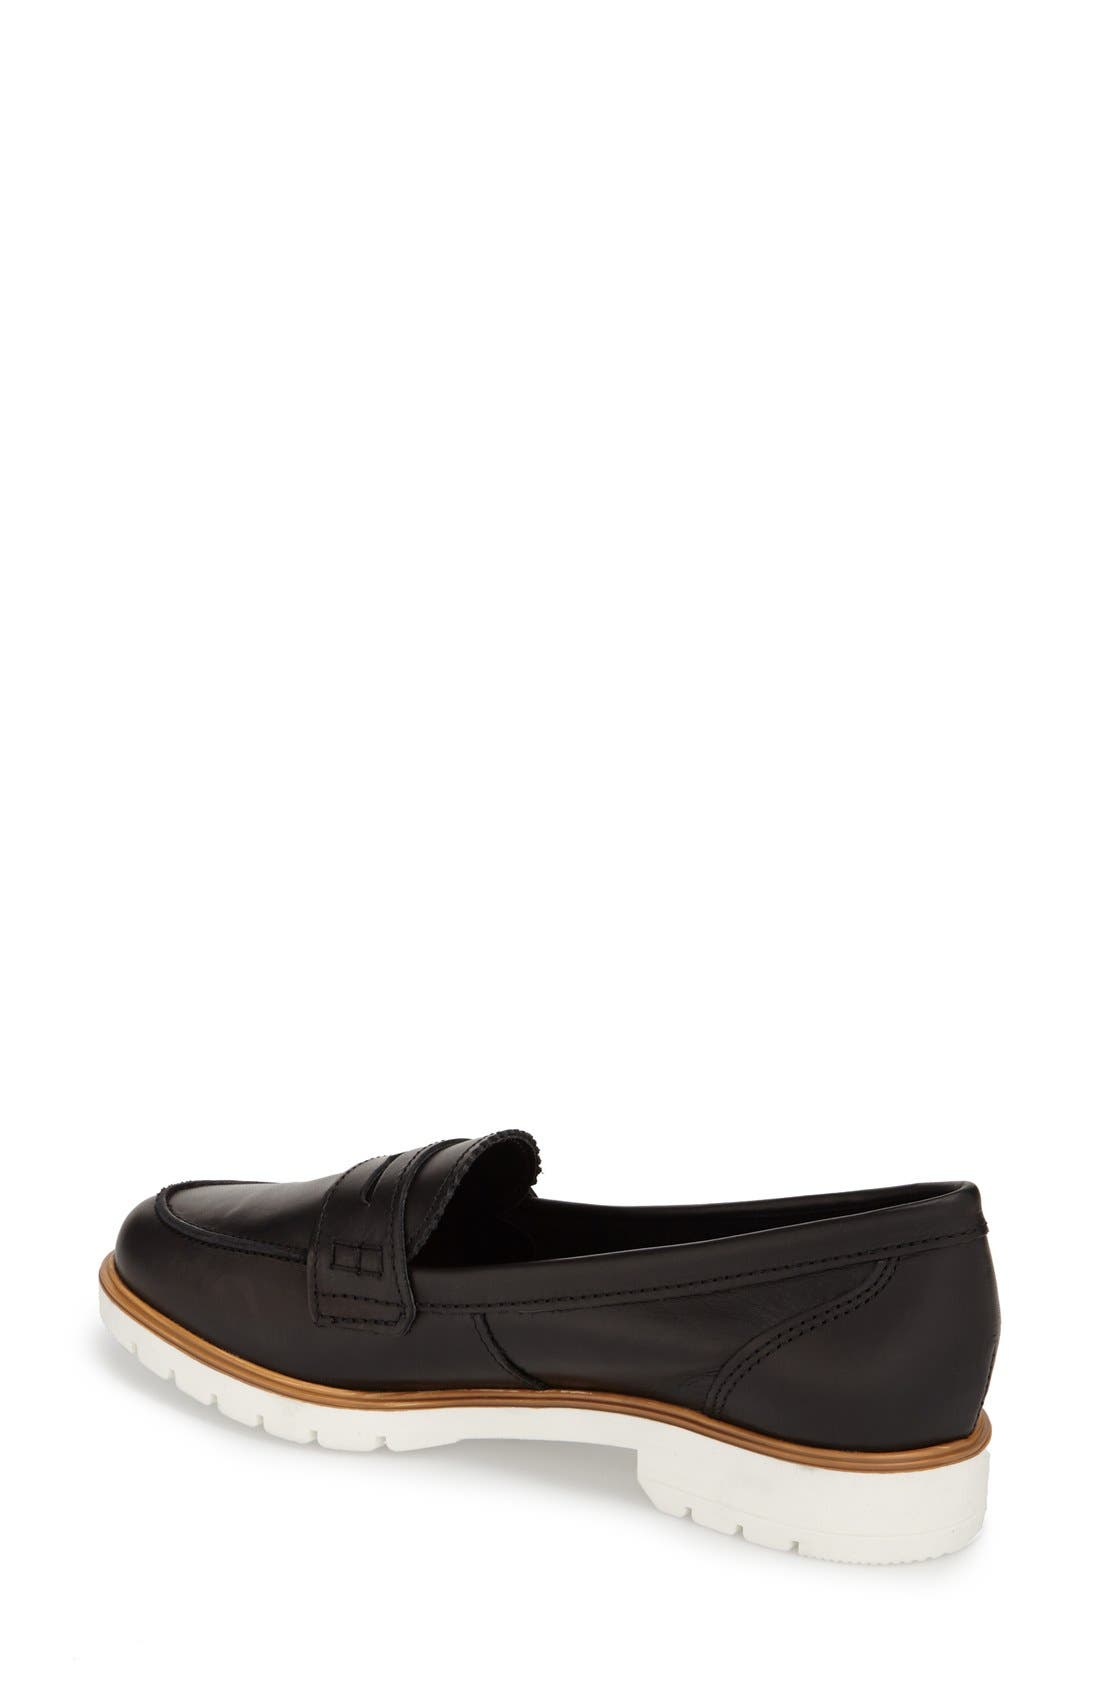 Alternate Image 2  - Dune London 'Gleat' Loafer (Women)